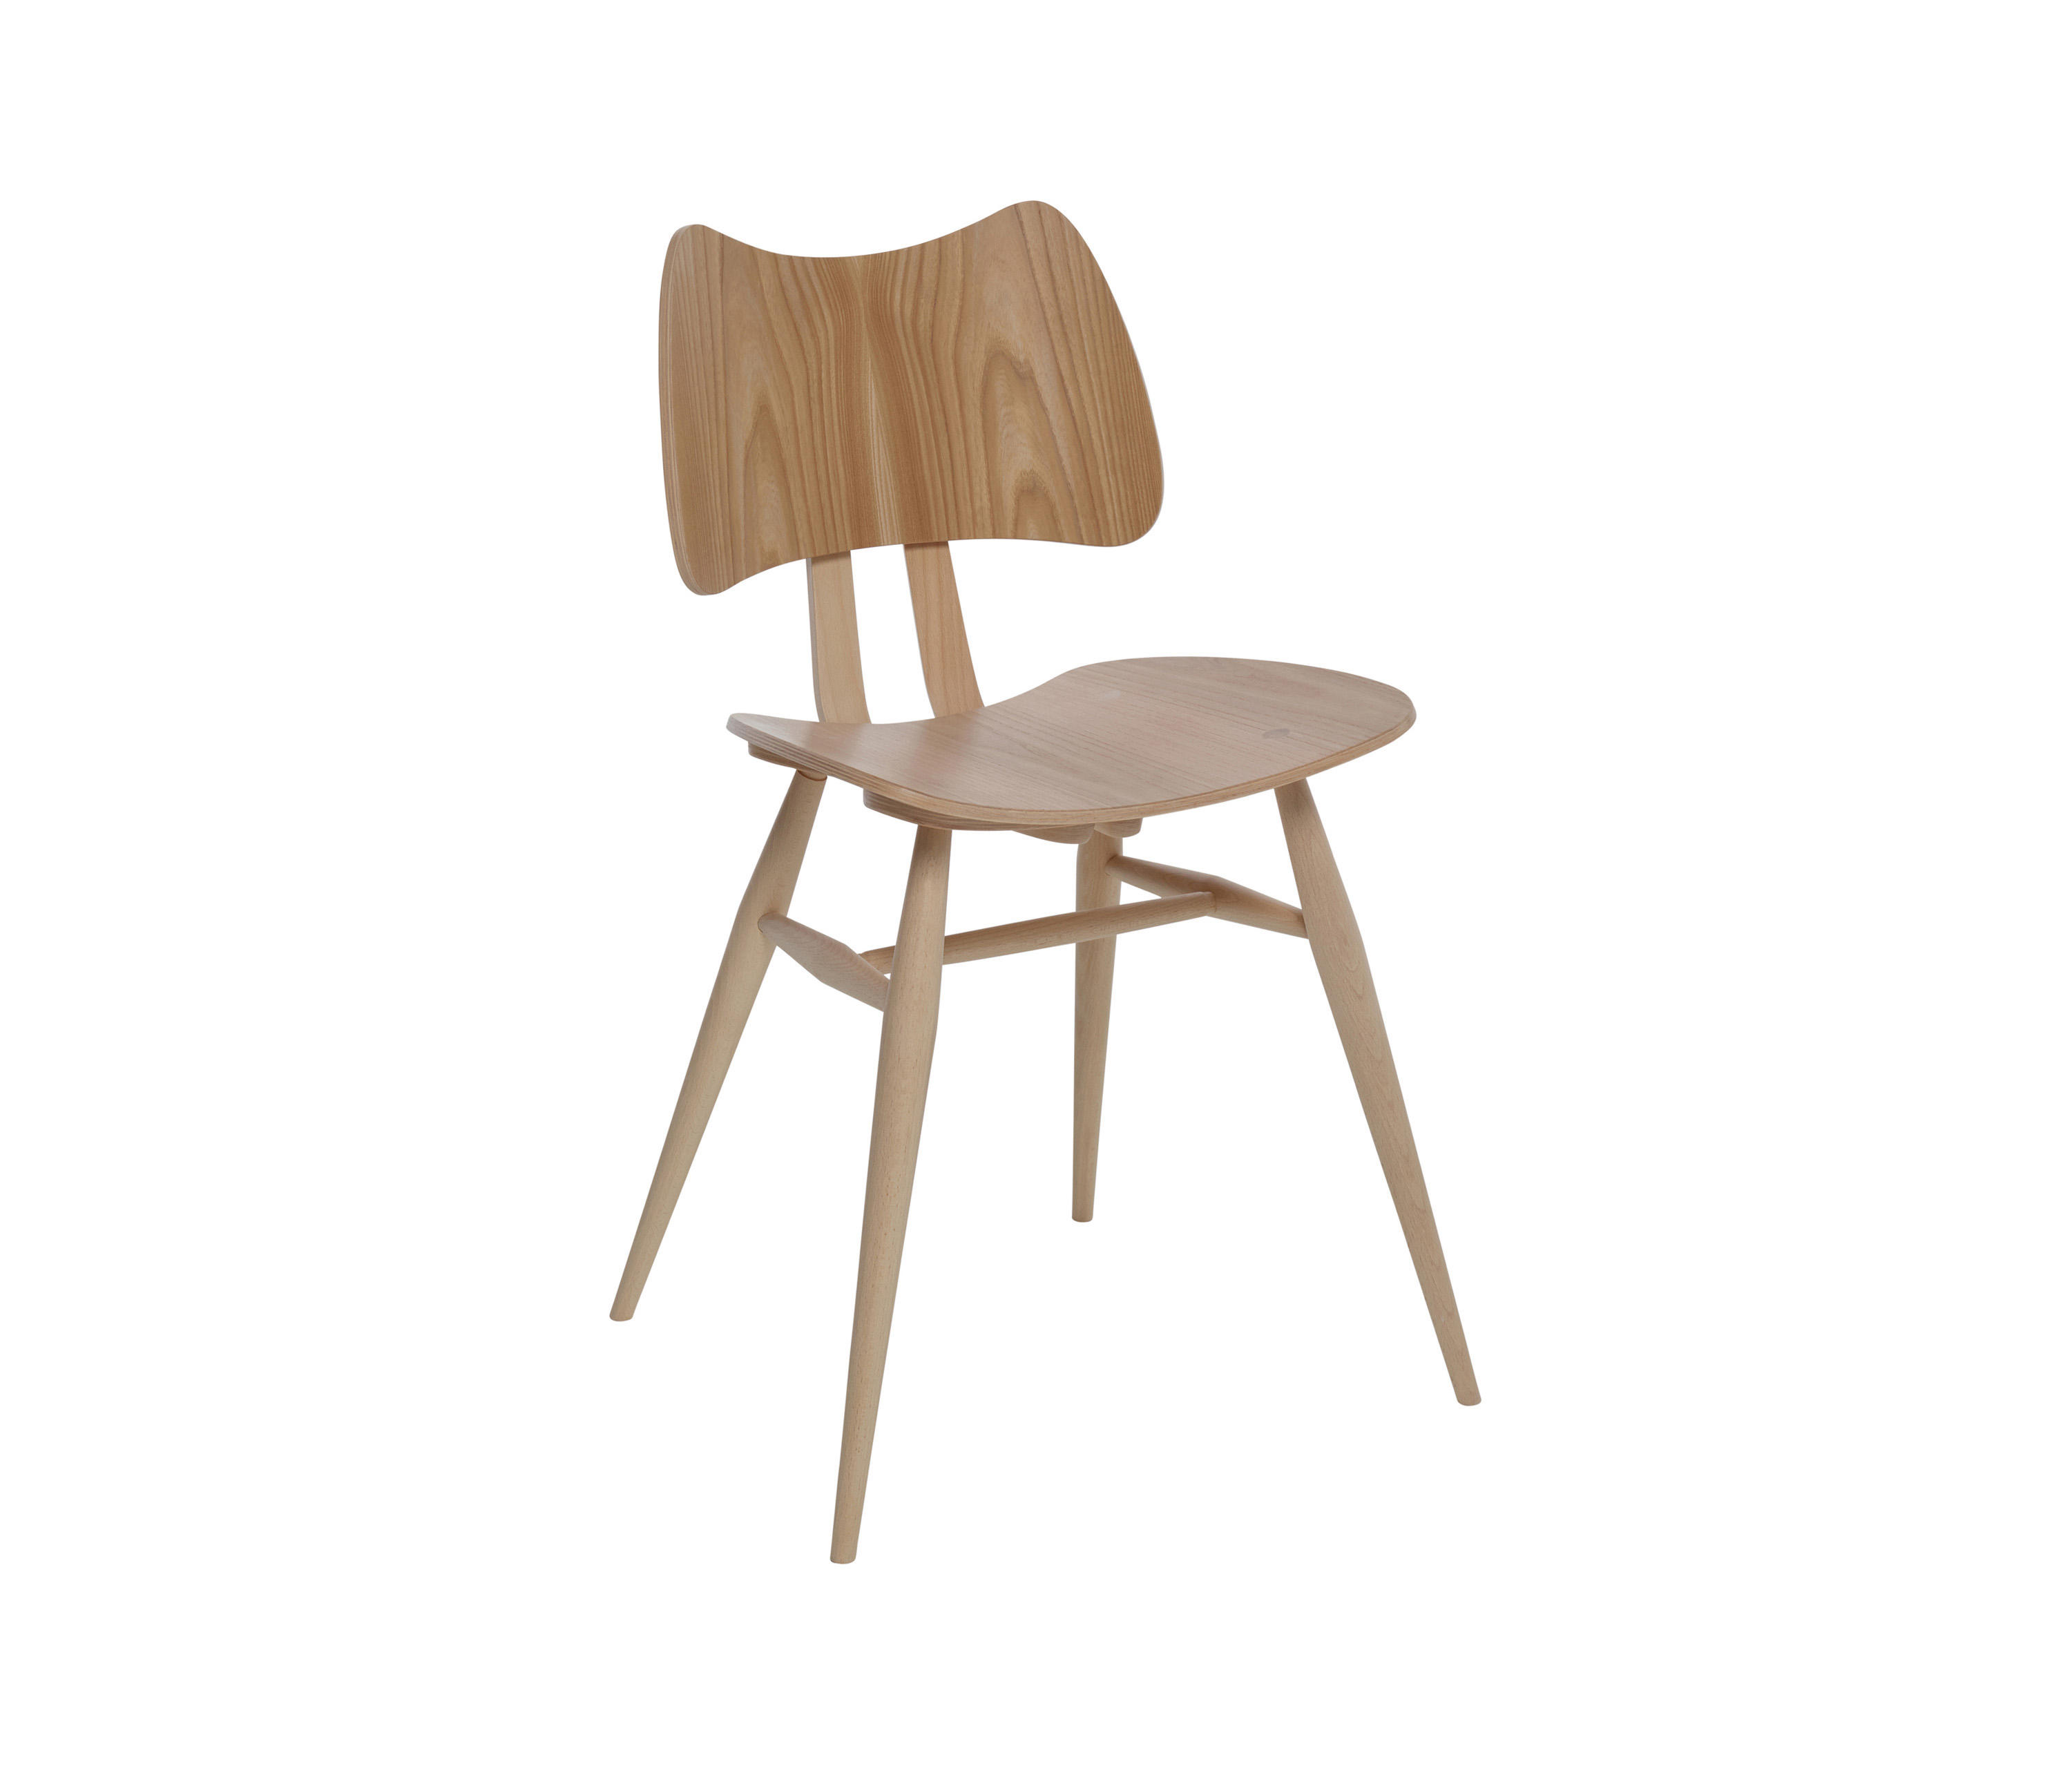 ercol chair design numbers table rental originals butterfly chairs from architonic by